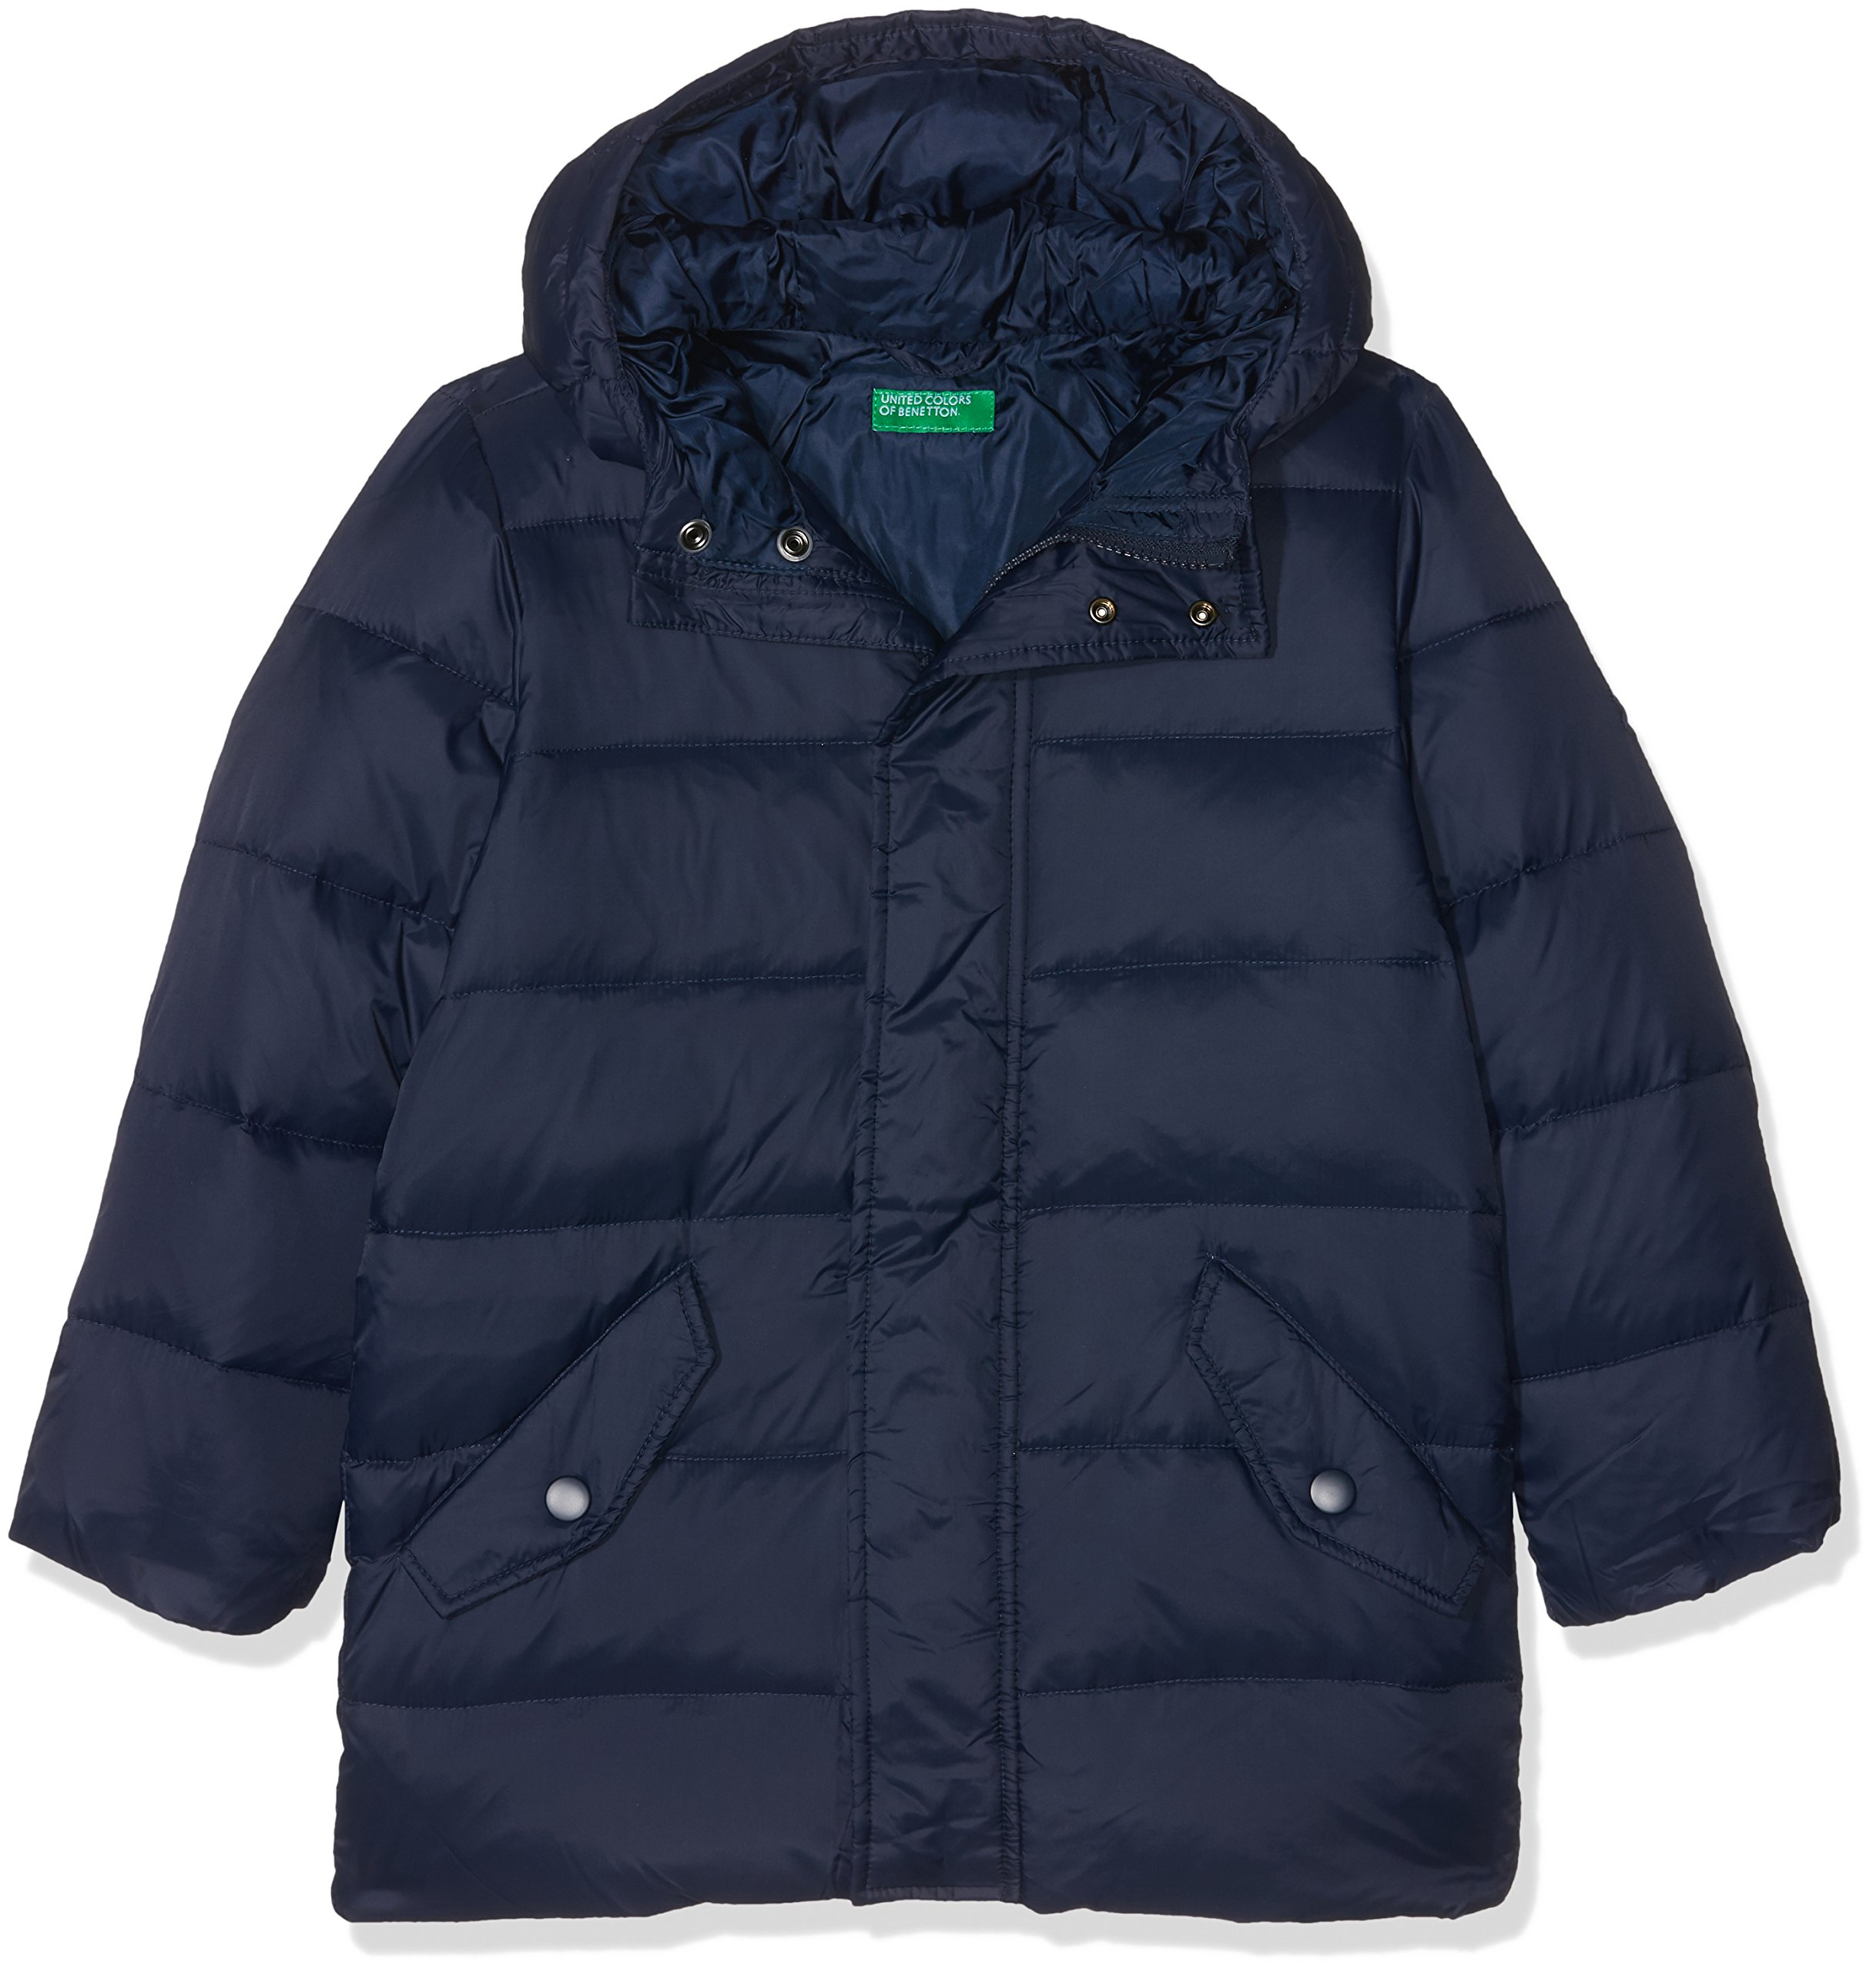 United Colors of Benetton Jacket with Down Chaqueta para Niños